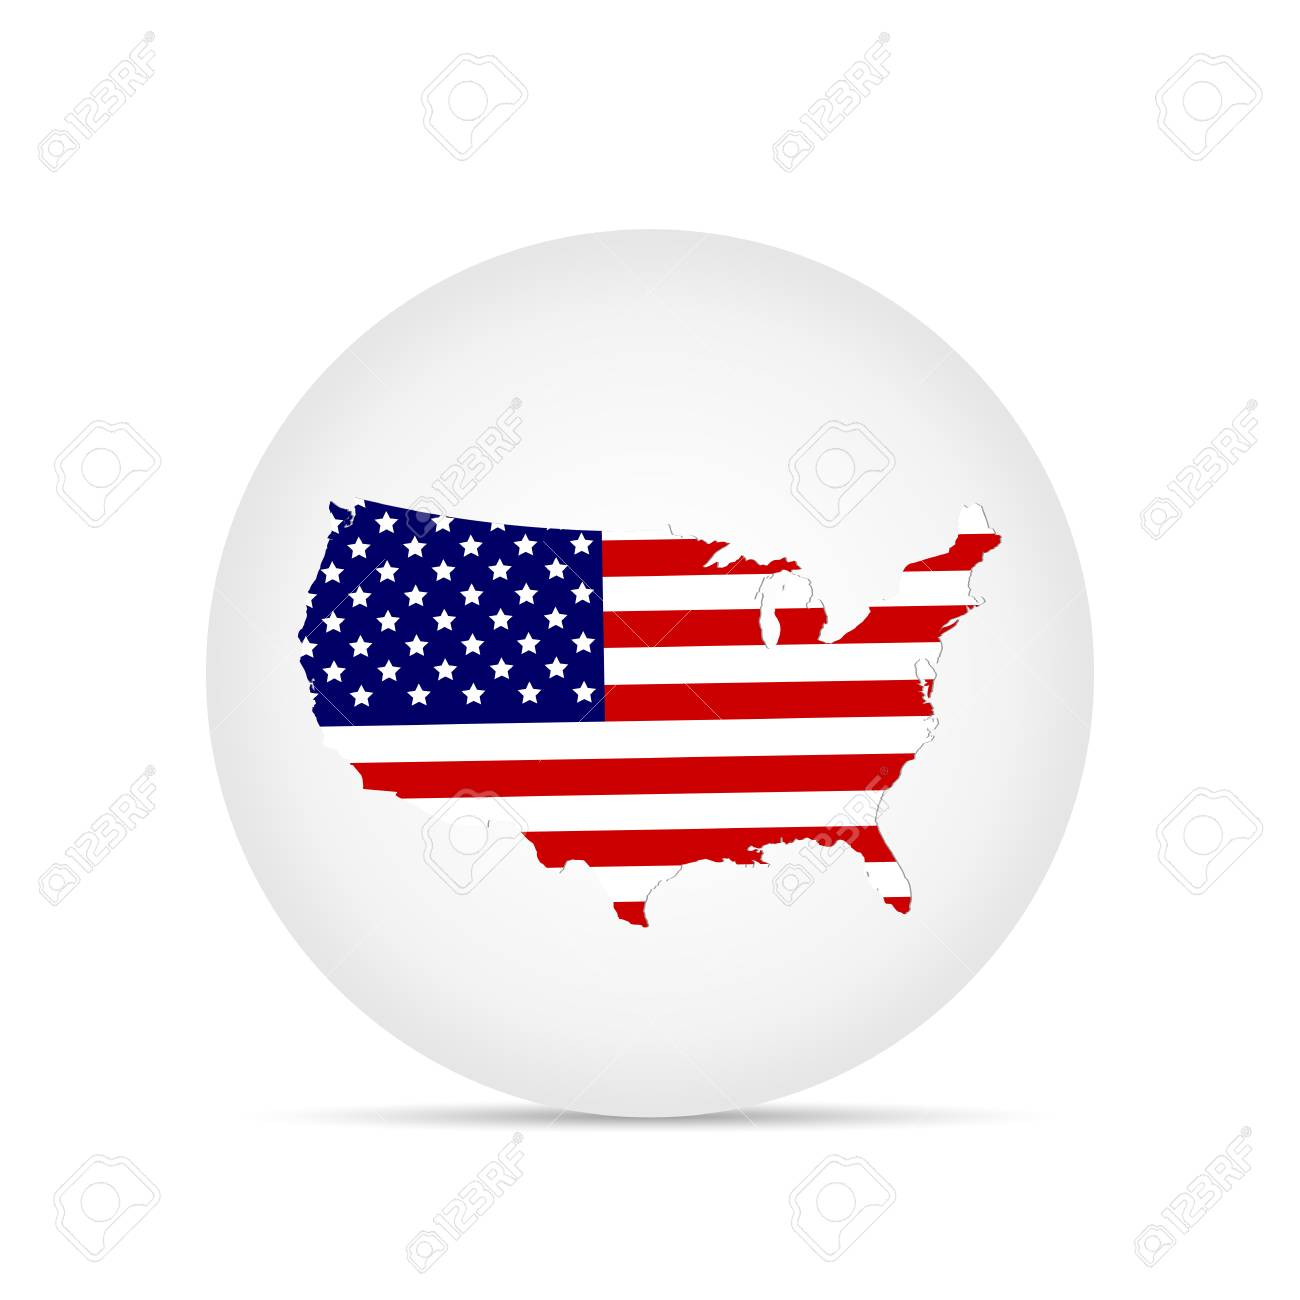 Illustration of the flag of the United States of America on a button. - 97101989